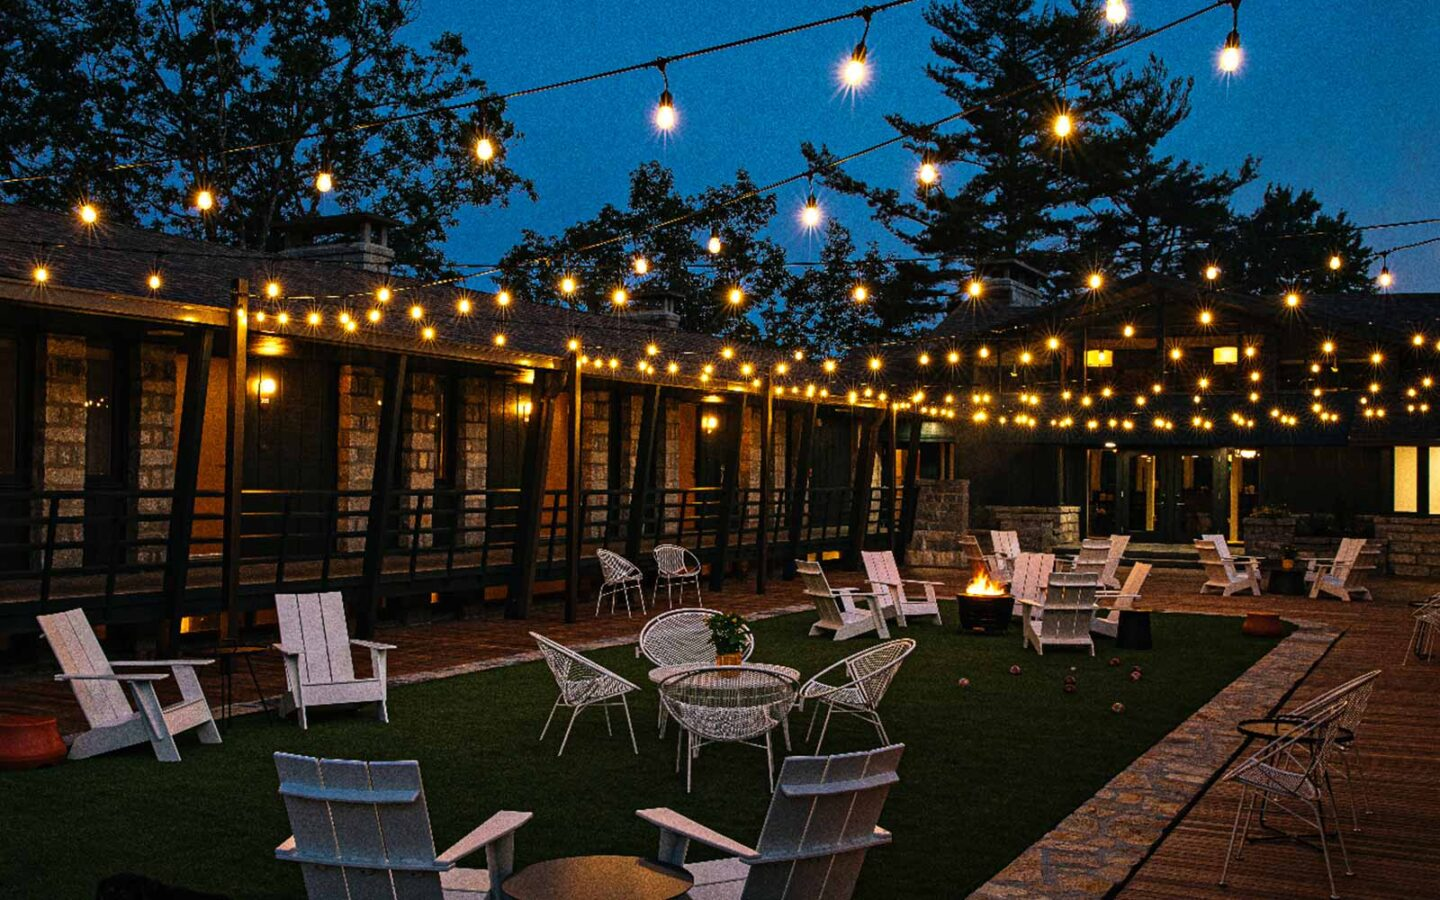 outdoor seating area for events at night time with outdoor furniture and lights